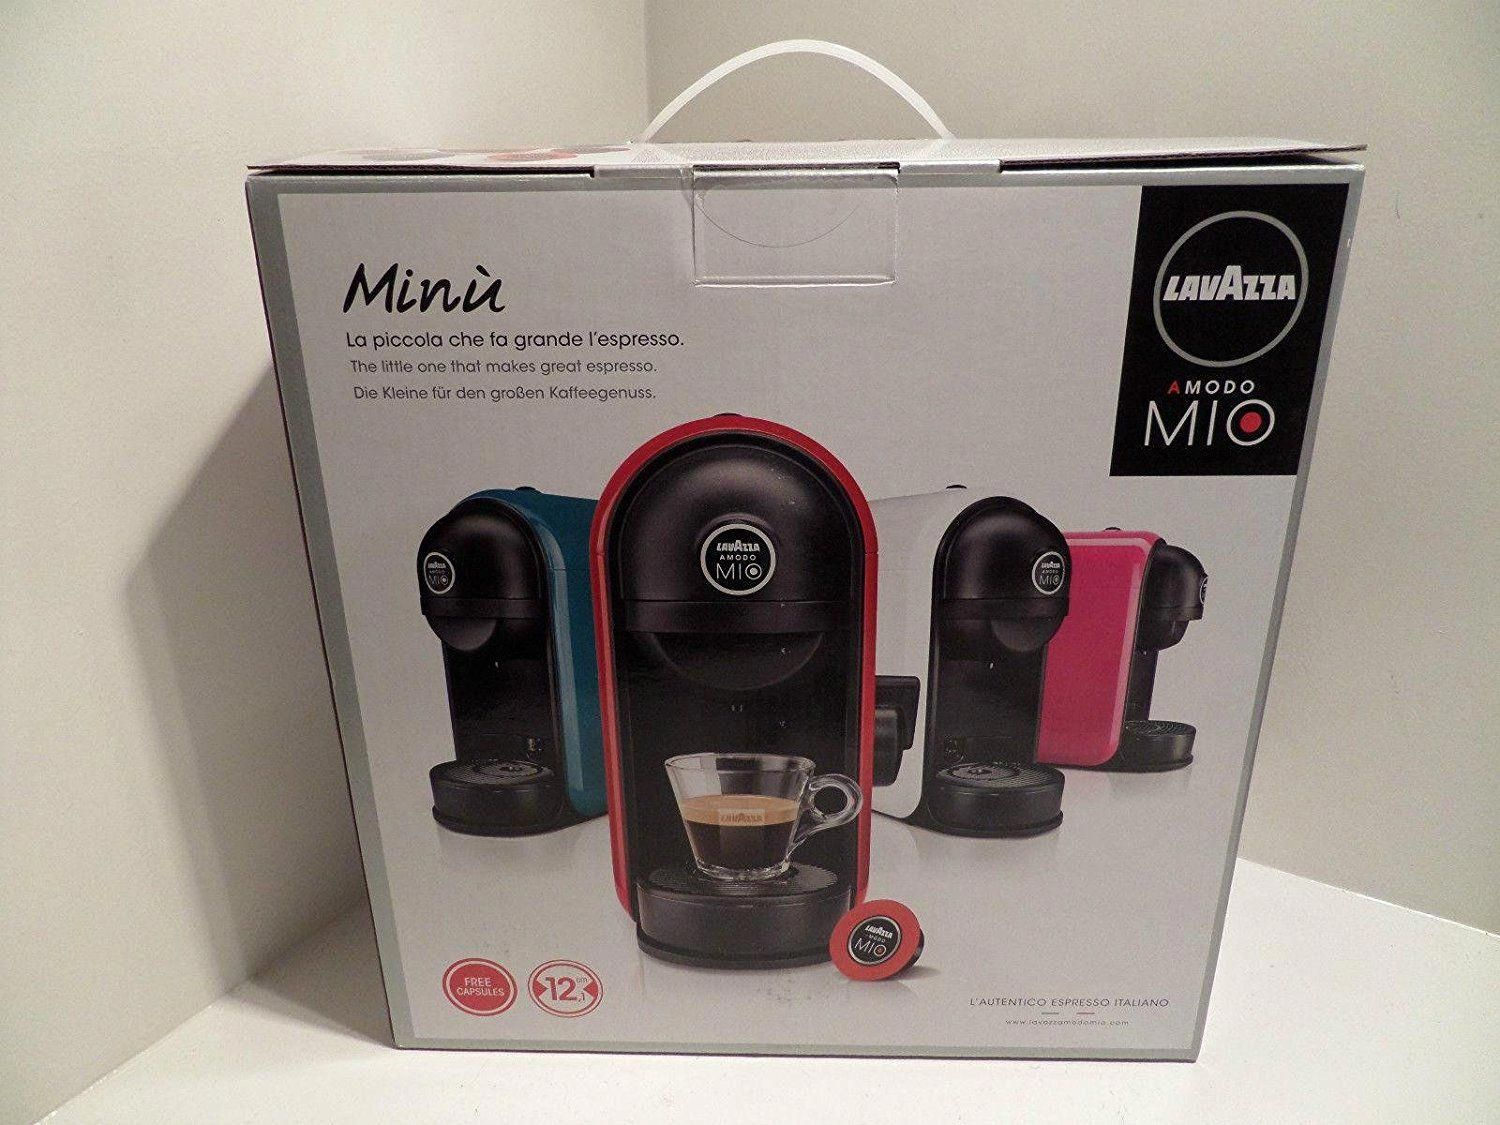 Lavazza Amodo Mio Minu White Coffee Pod Machine